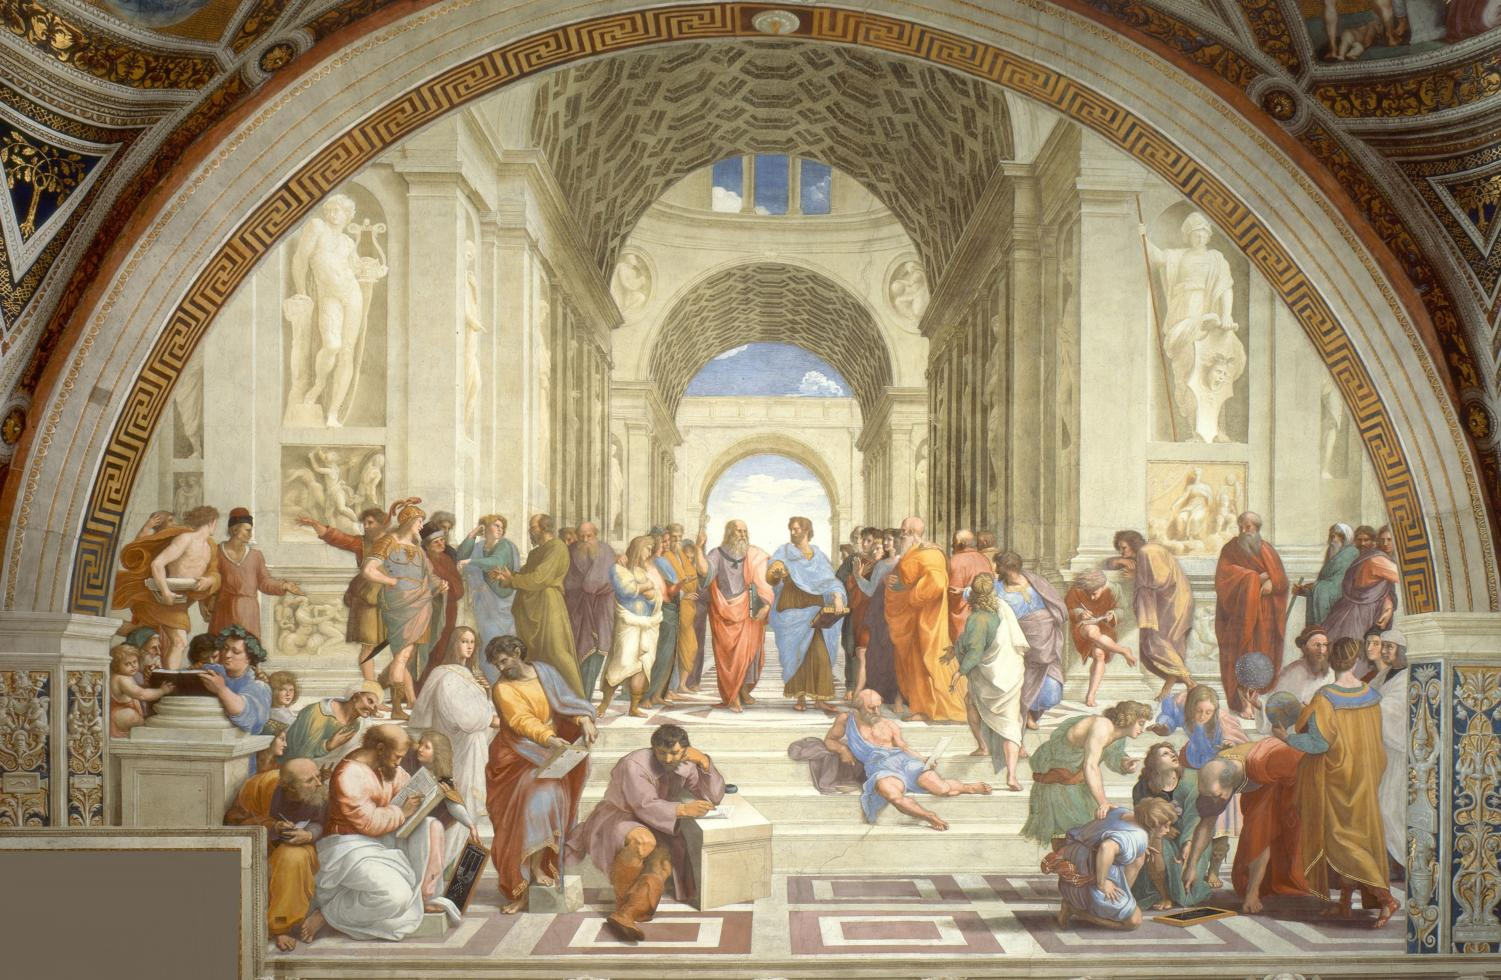 Students taking AP Art History will be analyzing famous pieces of art, such as the above image: Raphael's fresco of the School of Athens.